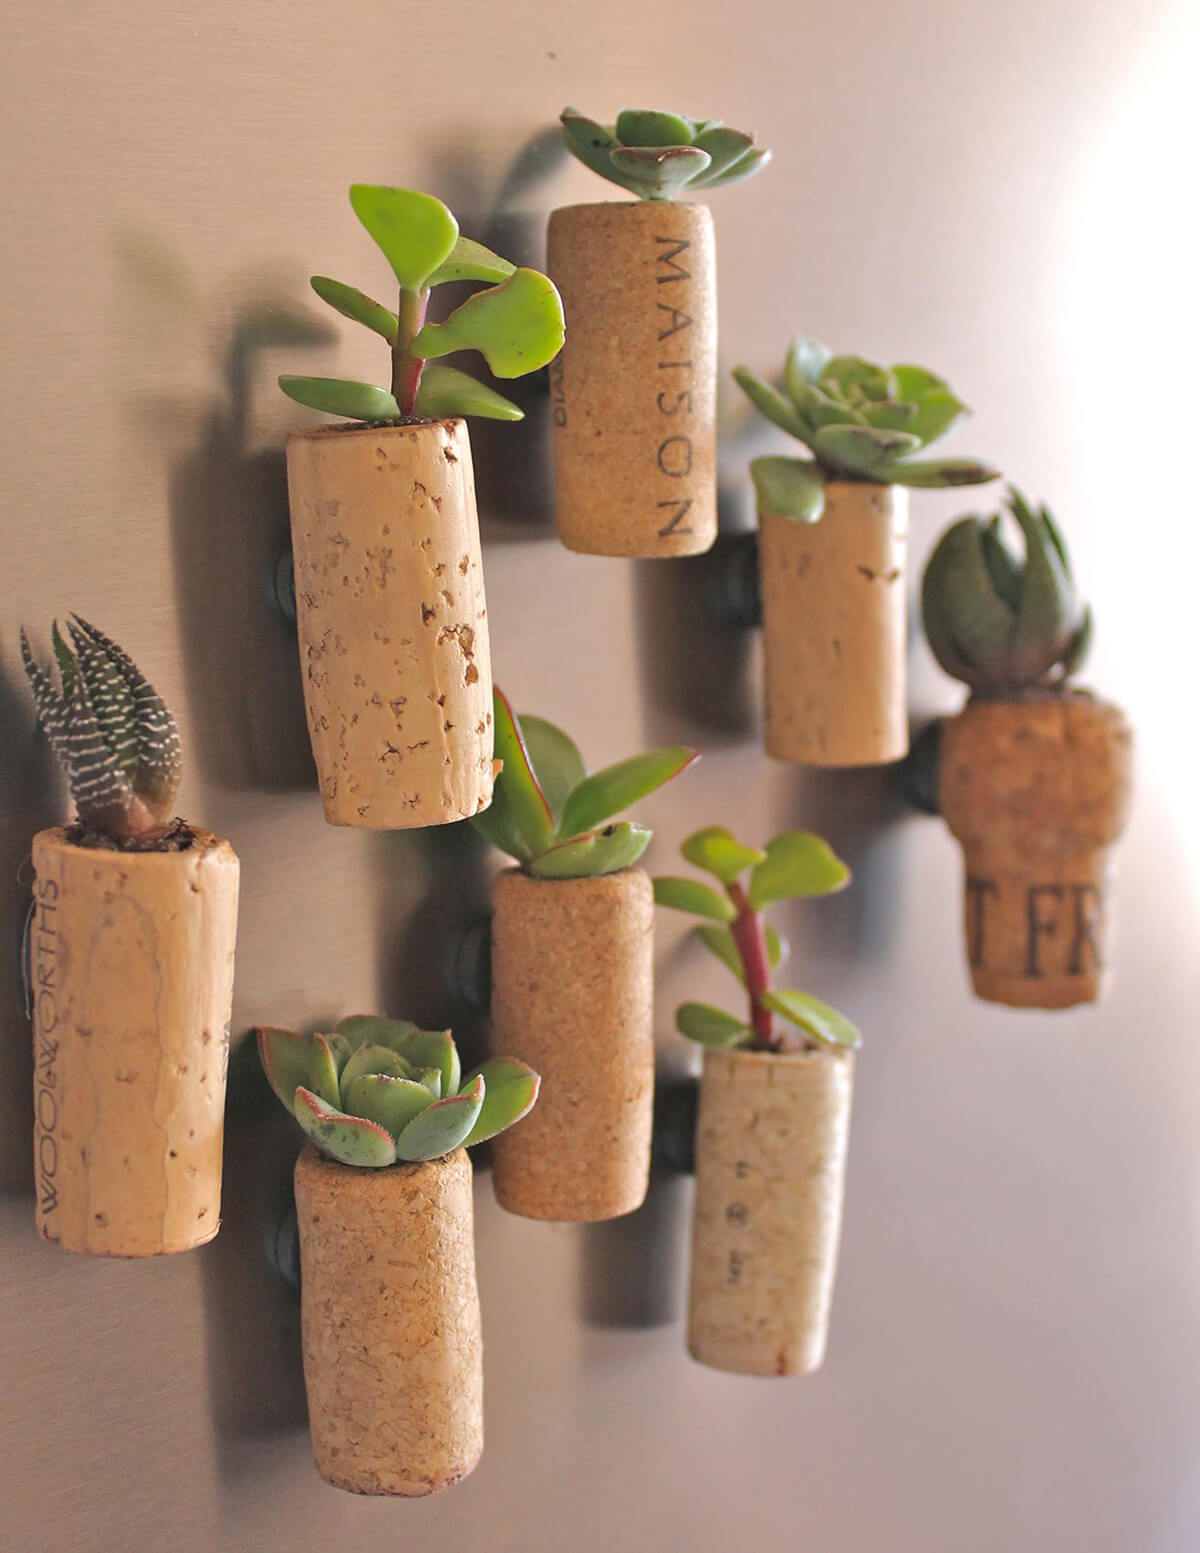 15 Delightful DIY Succulent Planter Ideas For Indoor and Outdoor Use